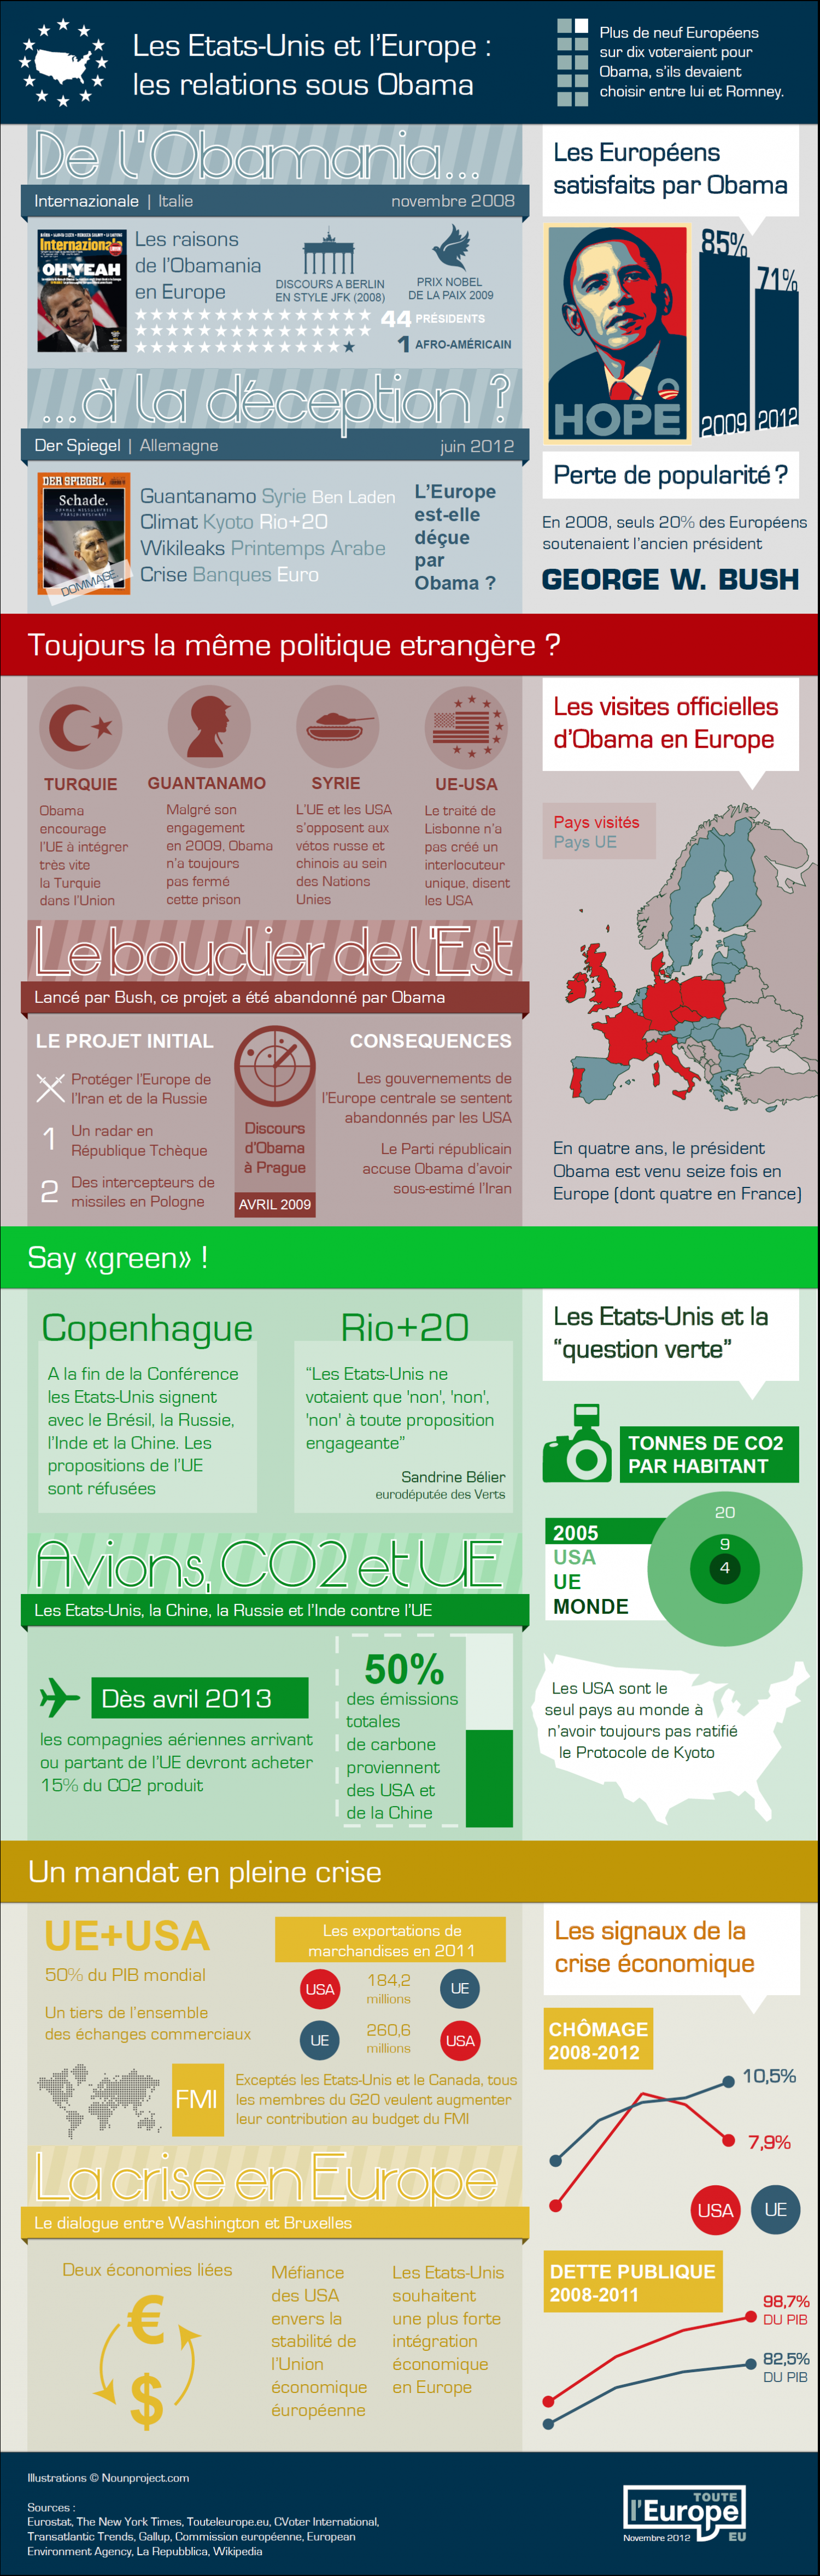 Obama-Europe relations Infographic